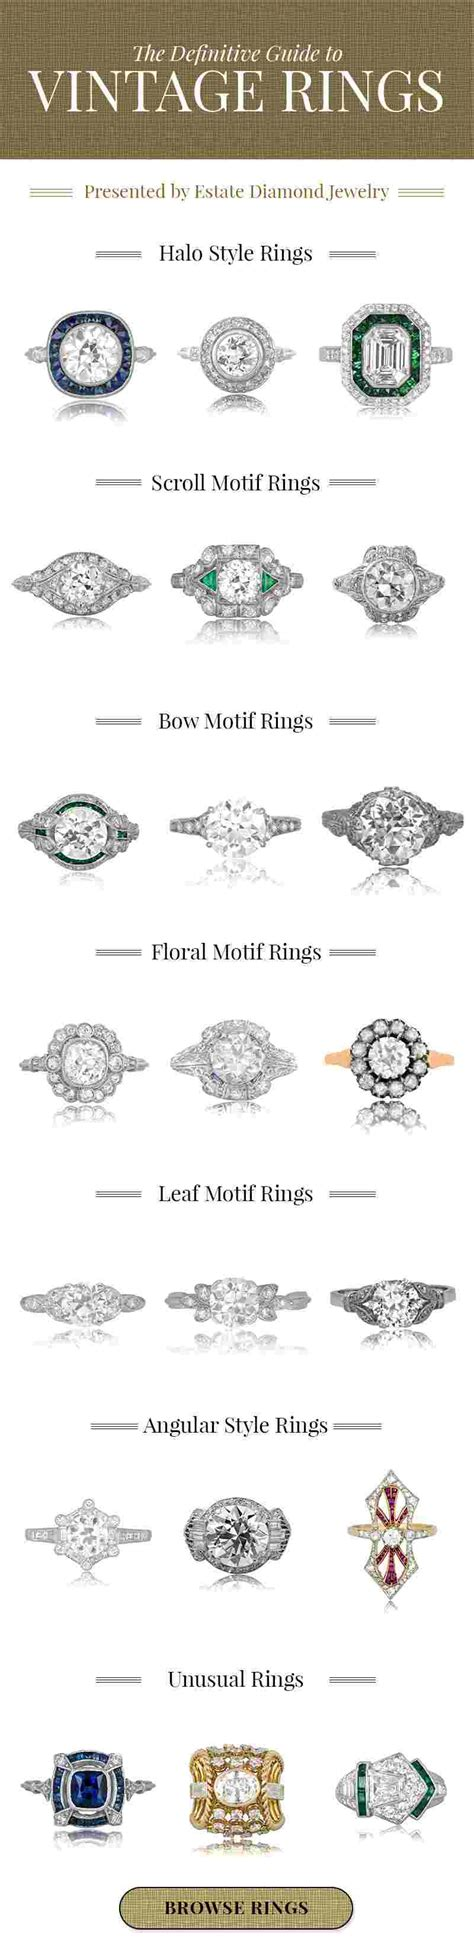 styles of vintage engagement rings vintage rings style guide estate jewelry